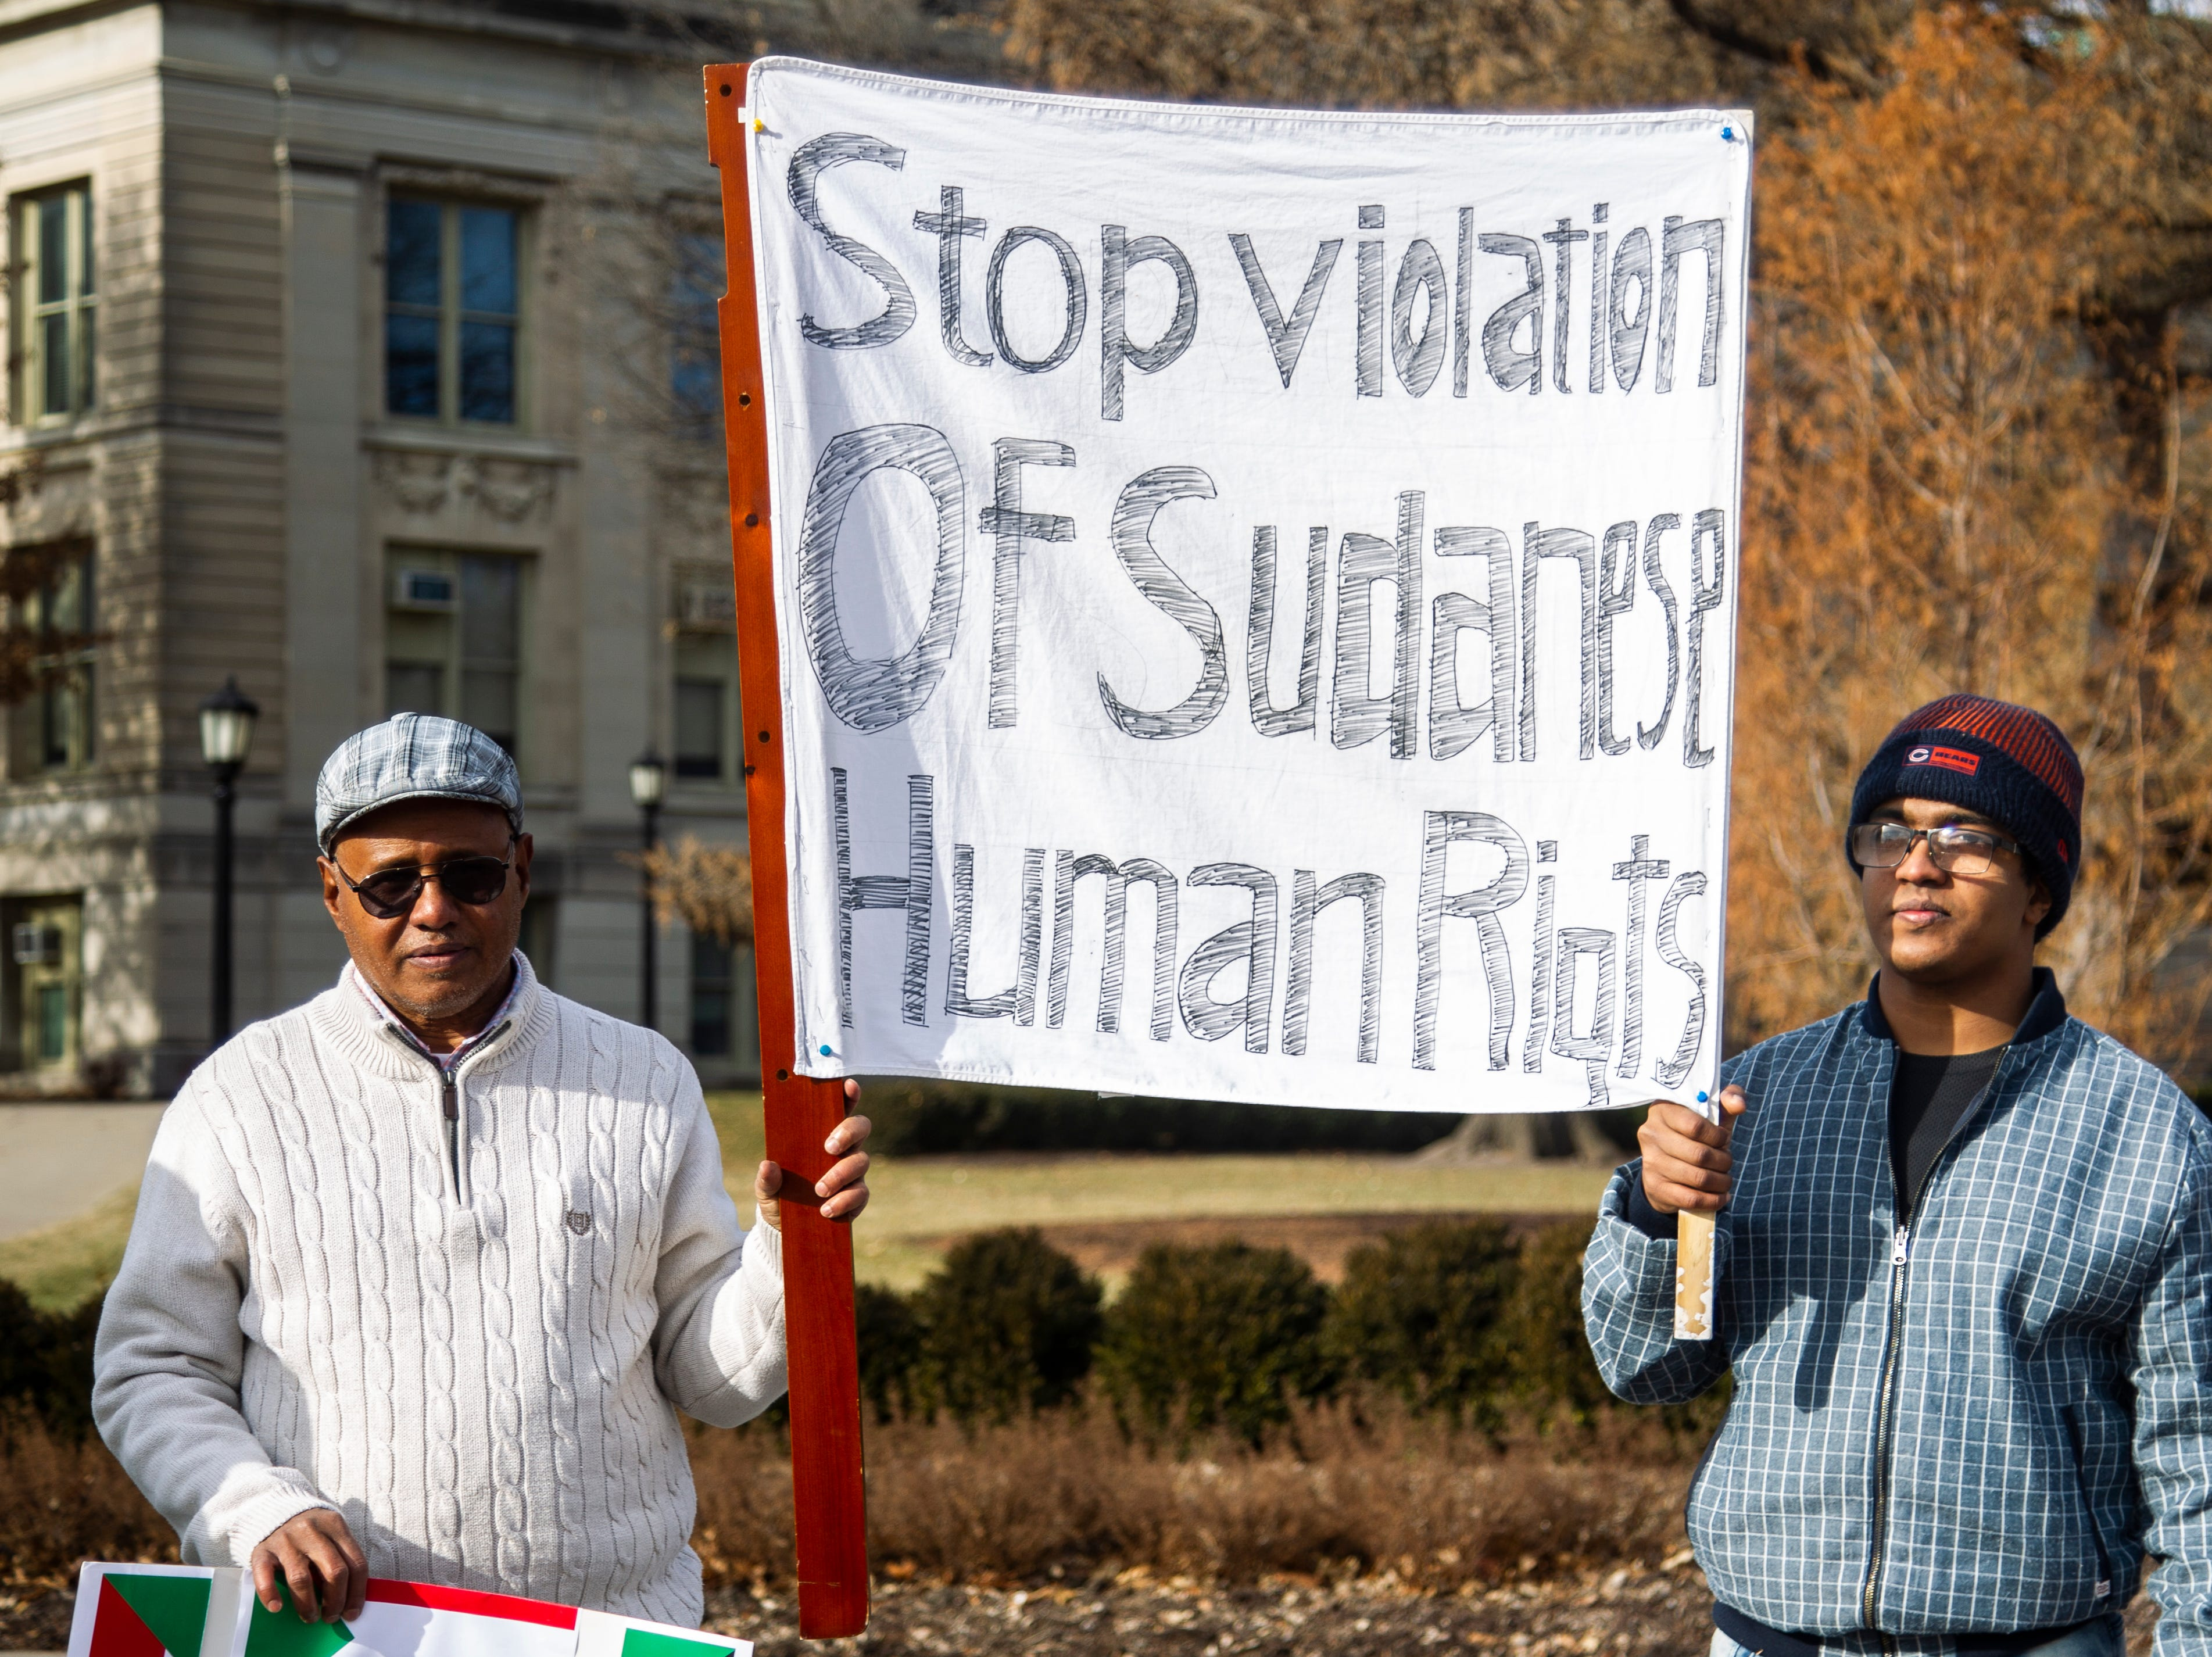 Sudanese members of the Iowa City community gather during a peaceful protest in opposition to the killings in their home country on Monday, Dec. 24, 2018, along the Pentacrest in downtown Iowa City.